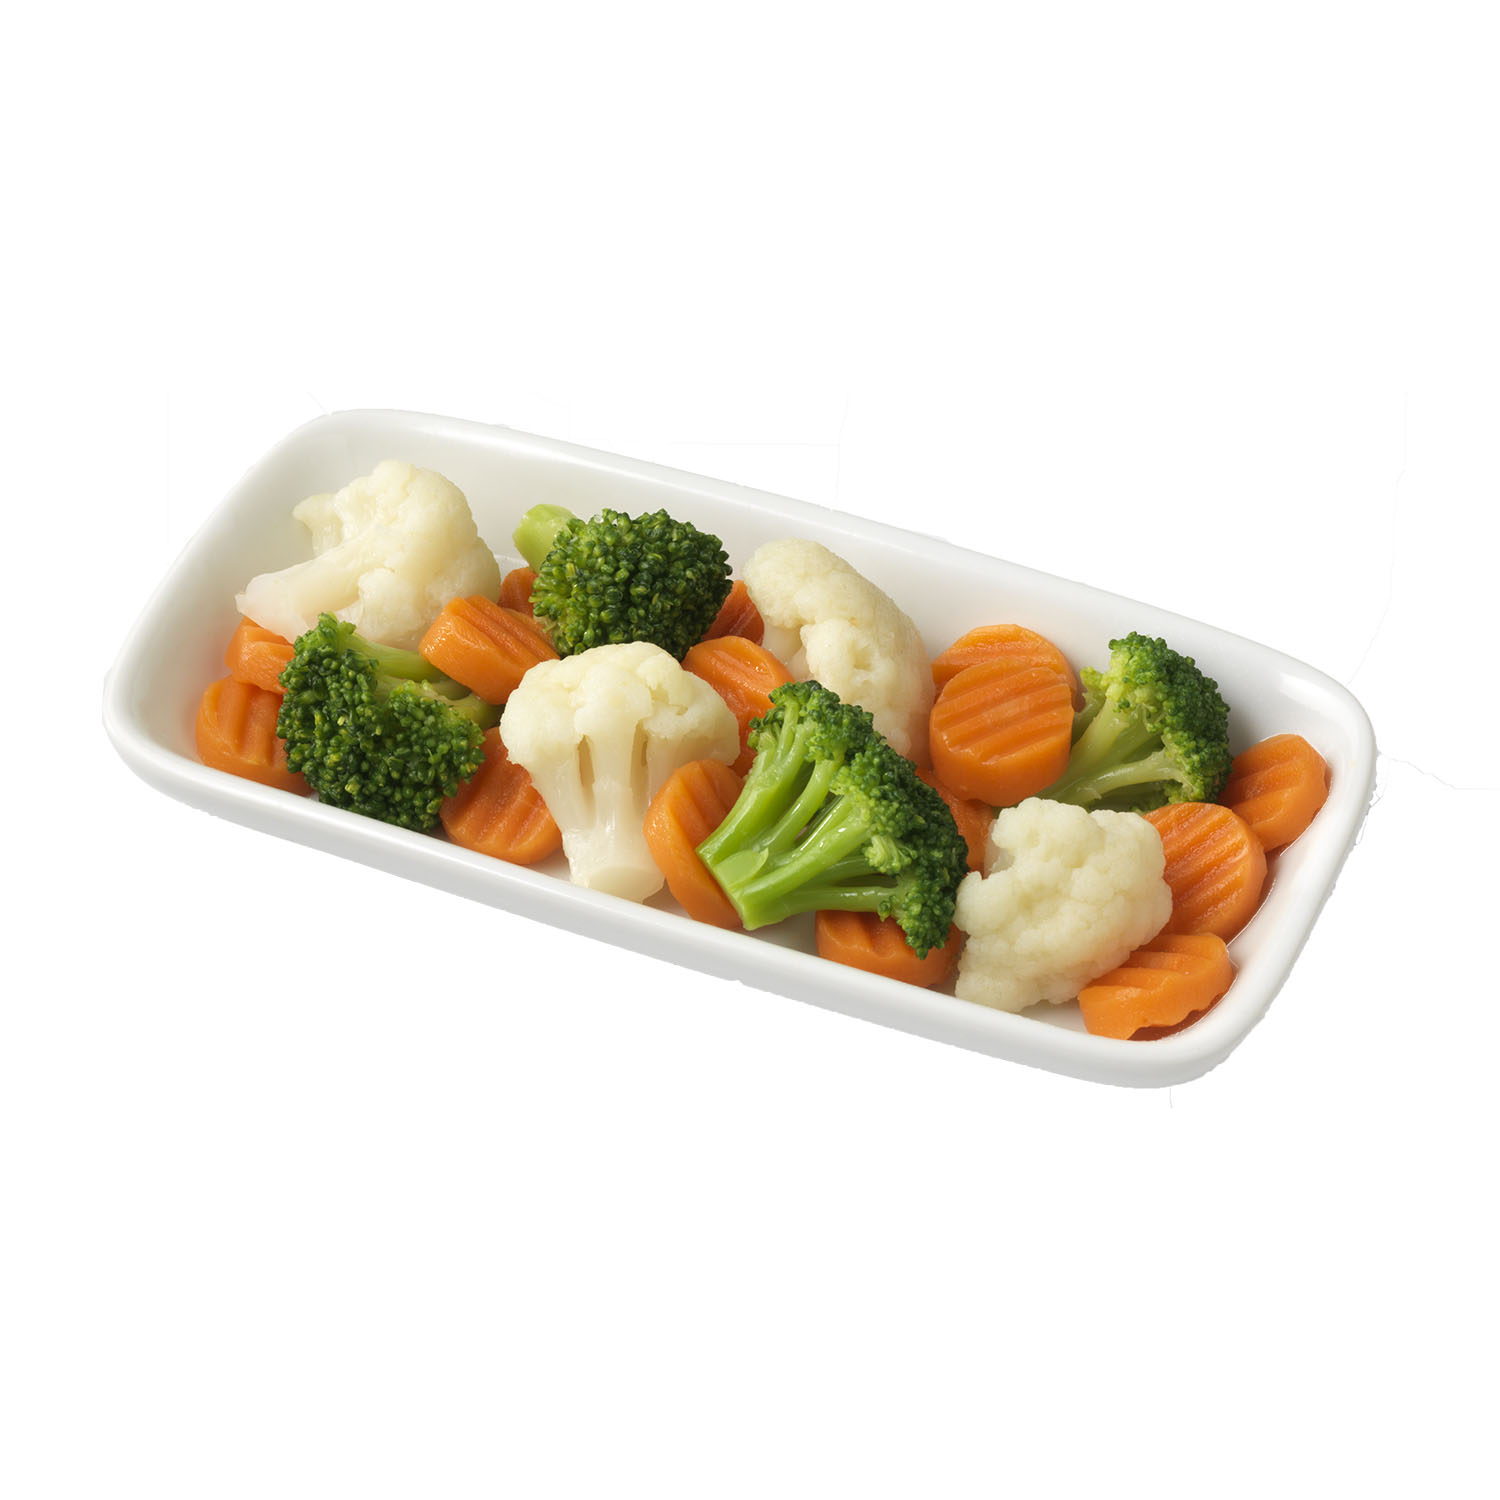 Beautiful vegetables norpac foods inc for Beautiful vegetables